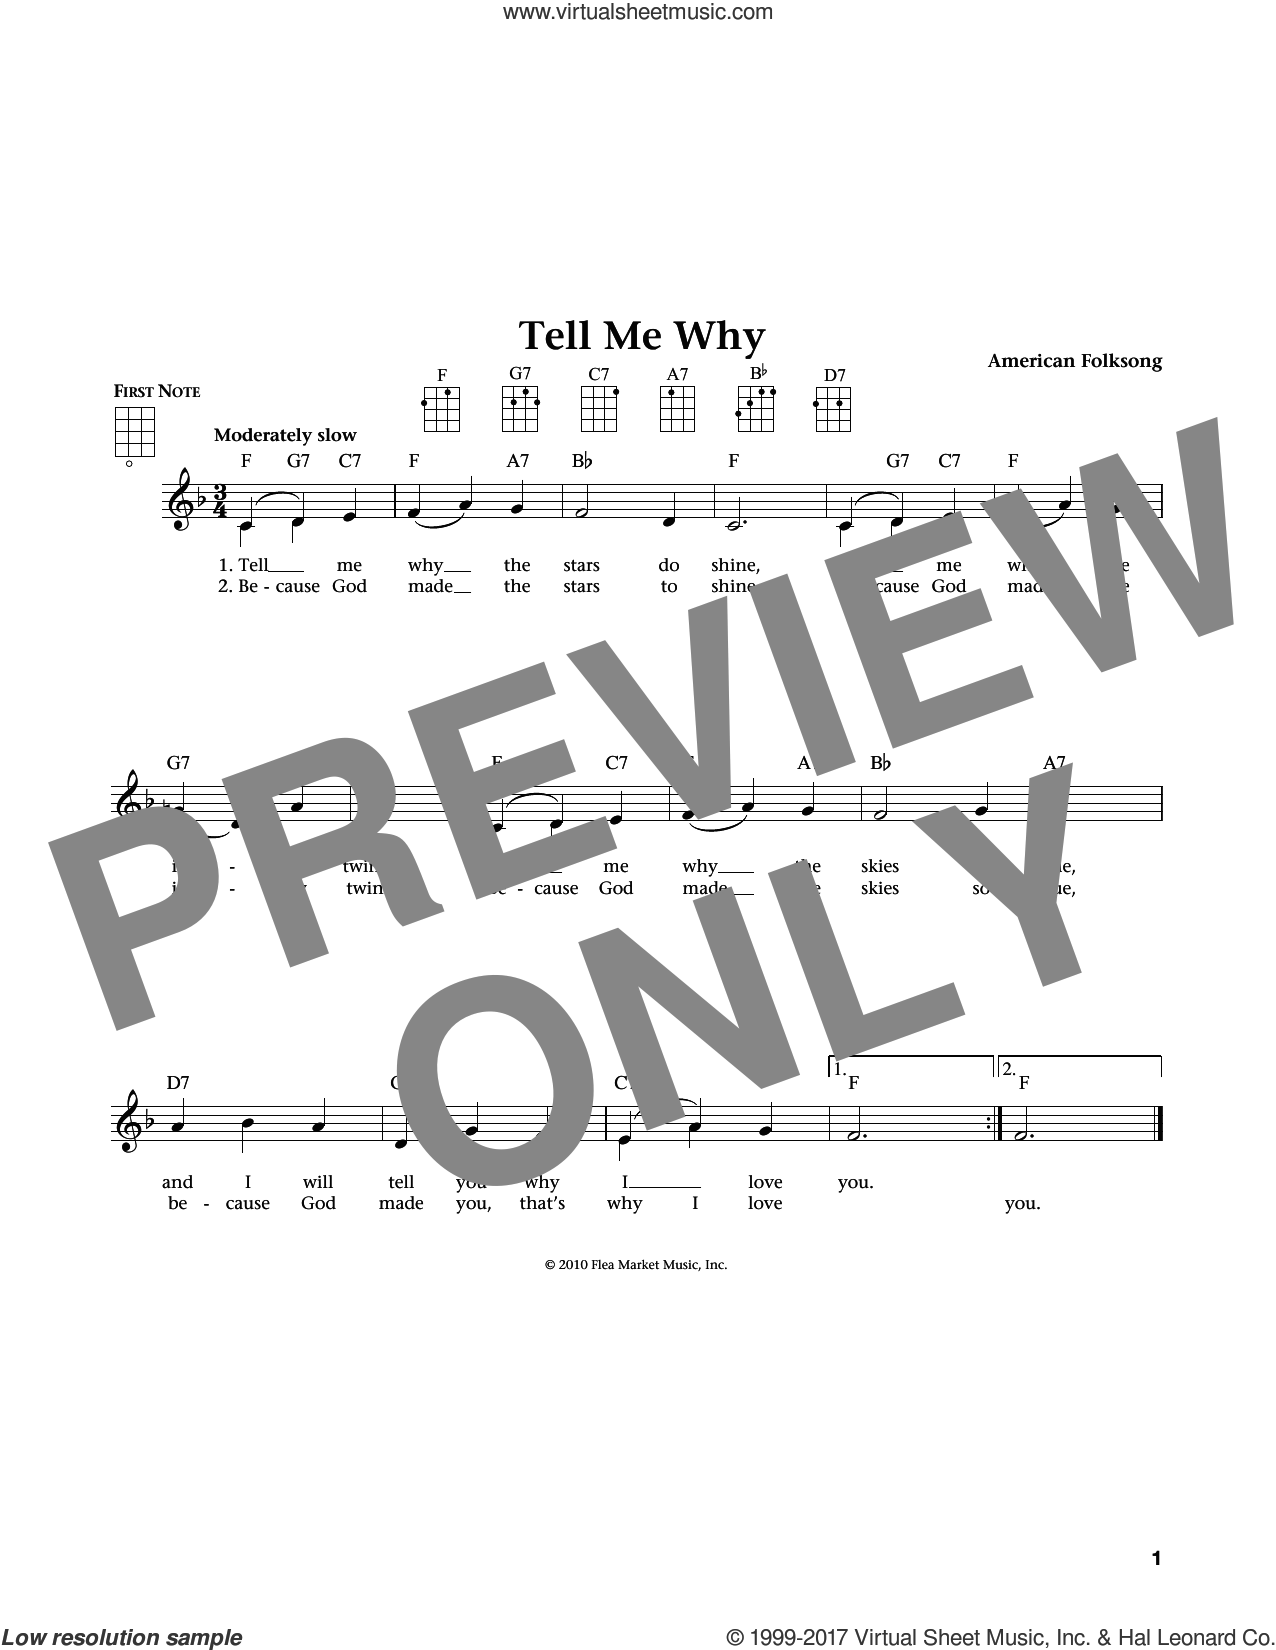 Tell Me Why sheet music for ukulele by American Folksong, Jim Beloff and Liz Beloff, intermediate